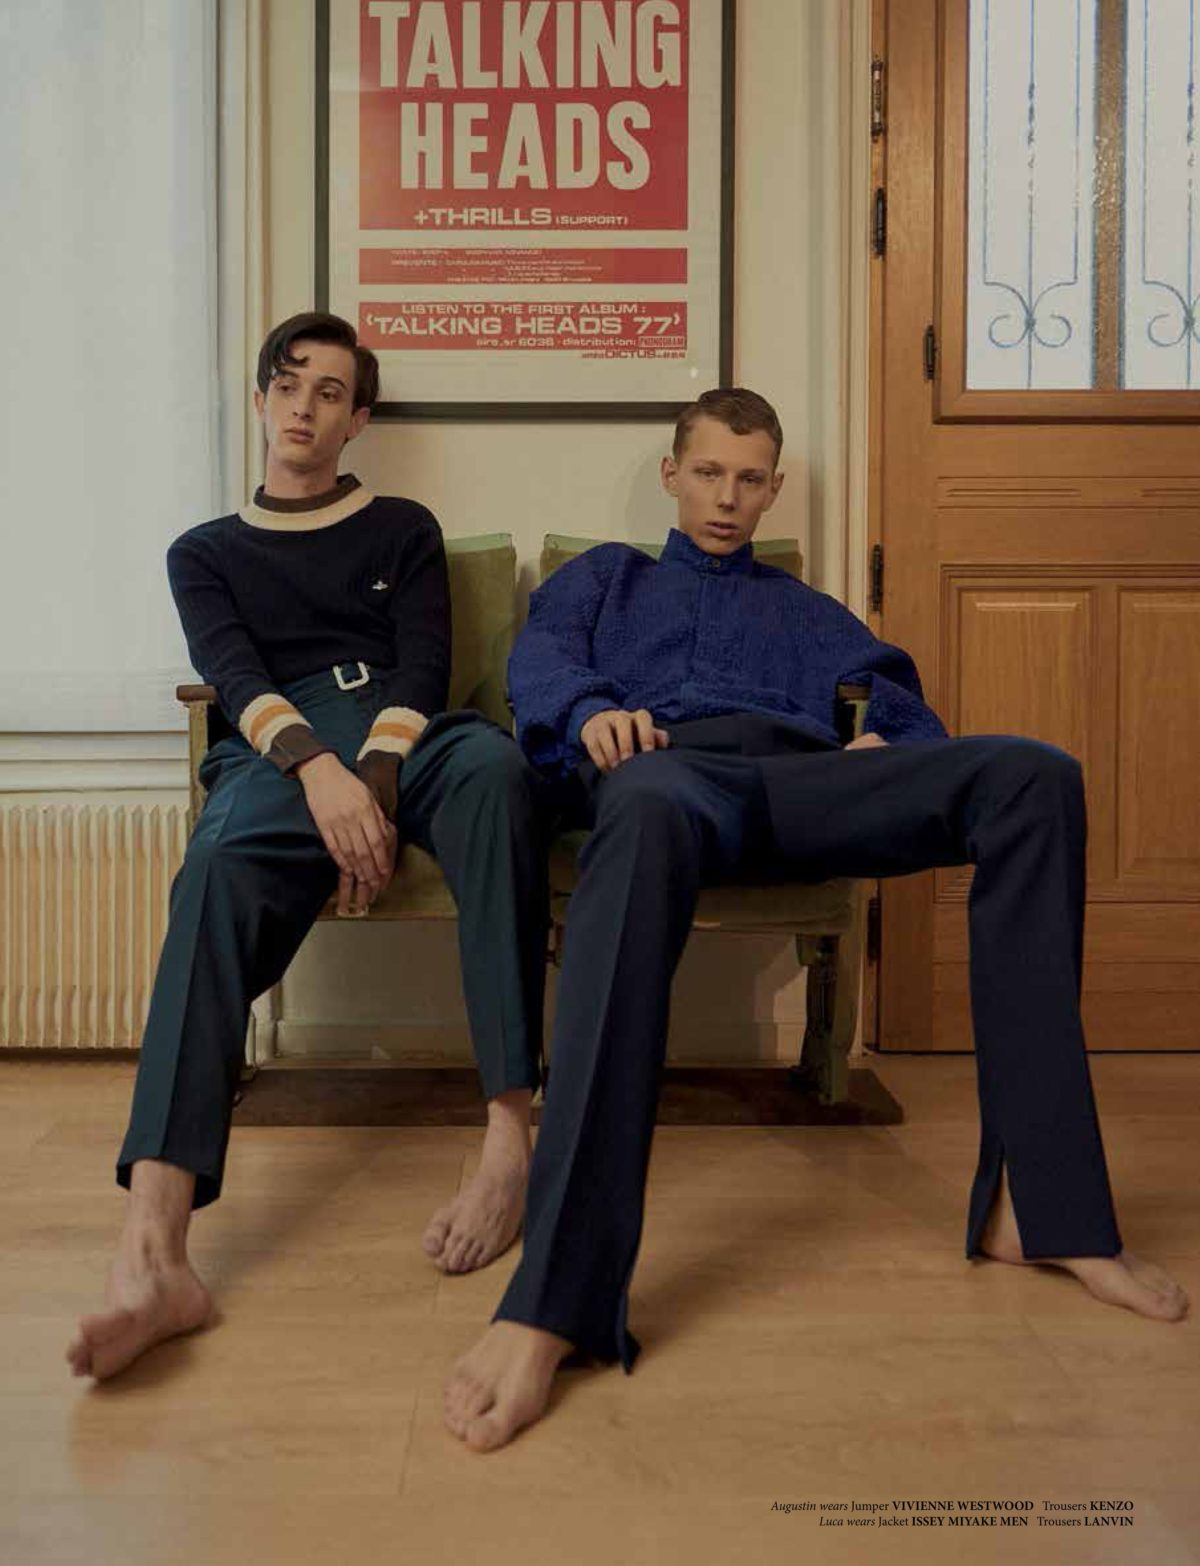 NR Magazine shot by Niklas Bergstrand & Mateja Duljak styled by Arthur Mayadoux with Vivienne Westwood, Kenzo, Issey Miyakey Men & Lanvin